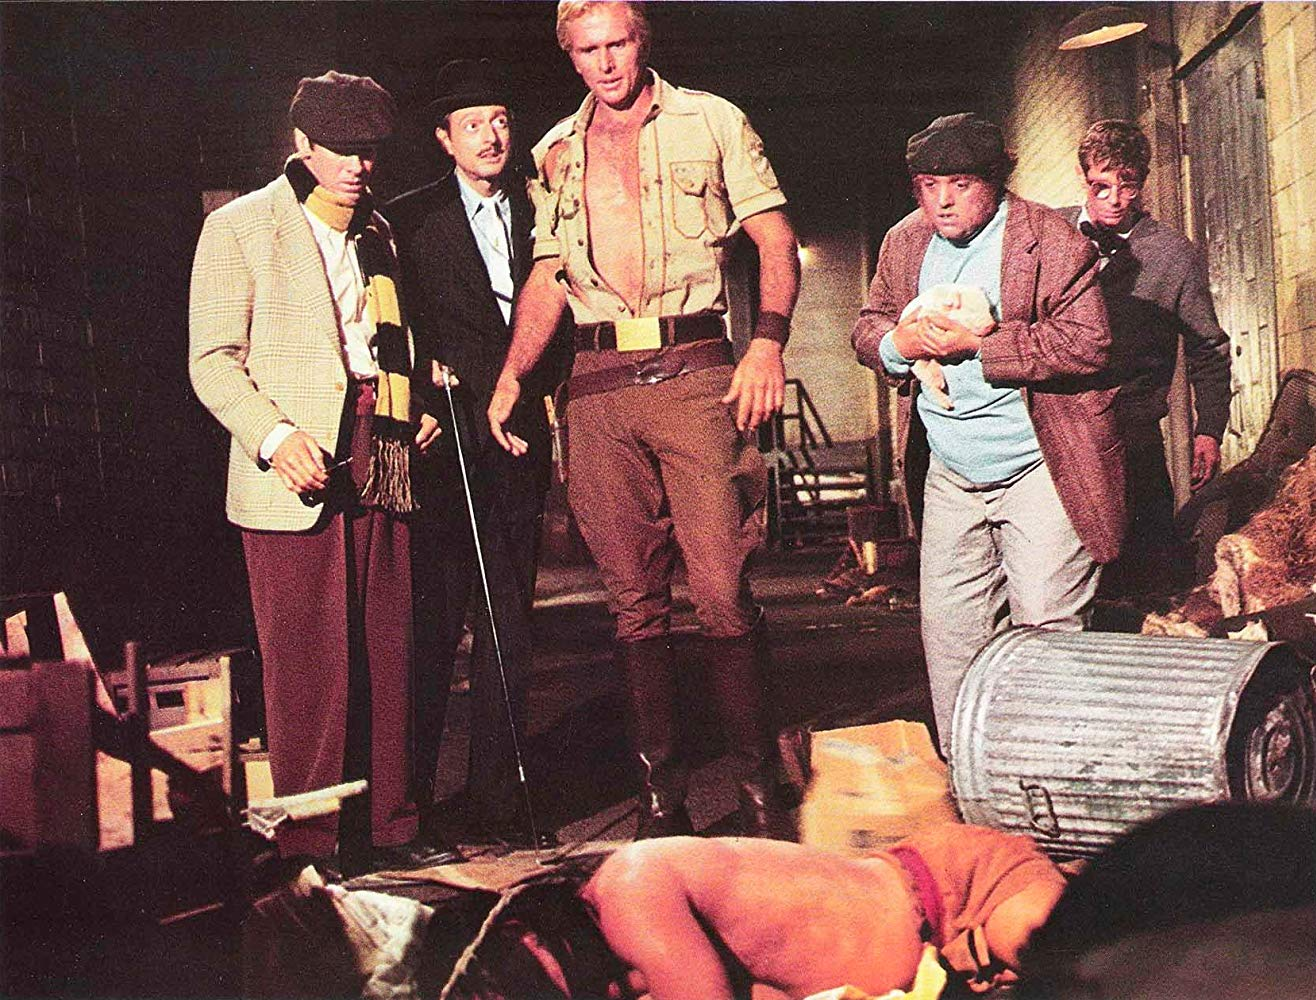 Doc and companions find a body - (l to r) Long Tom Roberts (Paul Gleason), Ham Brooks (Darrell Zwerling), Doc Savage (Ron Ely), Monk Mayfair (Michael Miller) and Johnny Littlejohn (Eldon Quick) in Doc Savage –The Man of Bronze (1975)